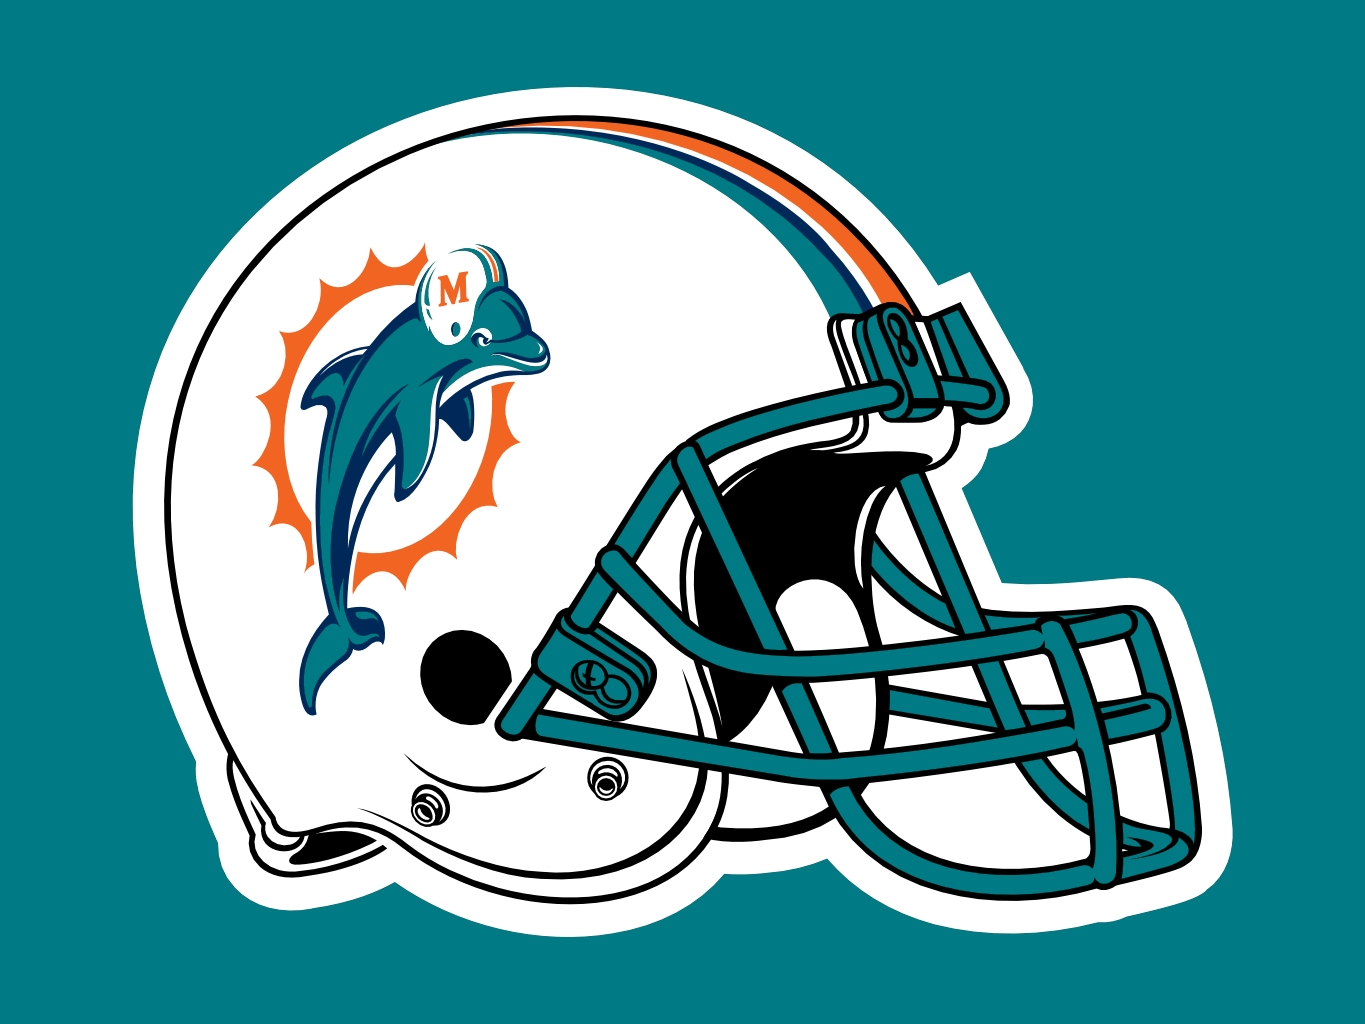 Click each preview to download the full-size imageDolphins Helmet Logo